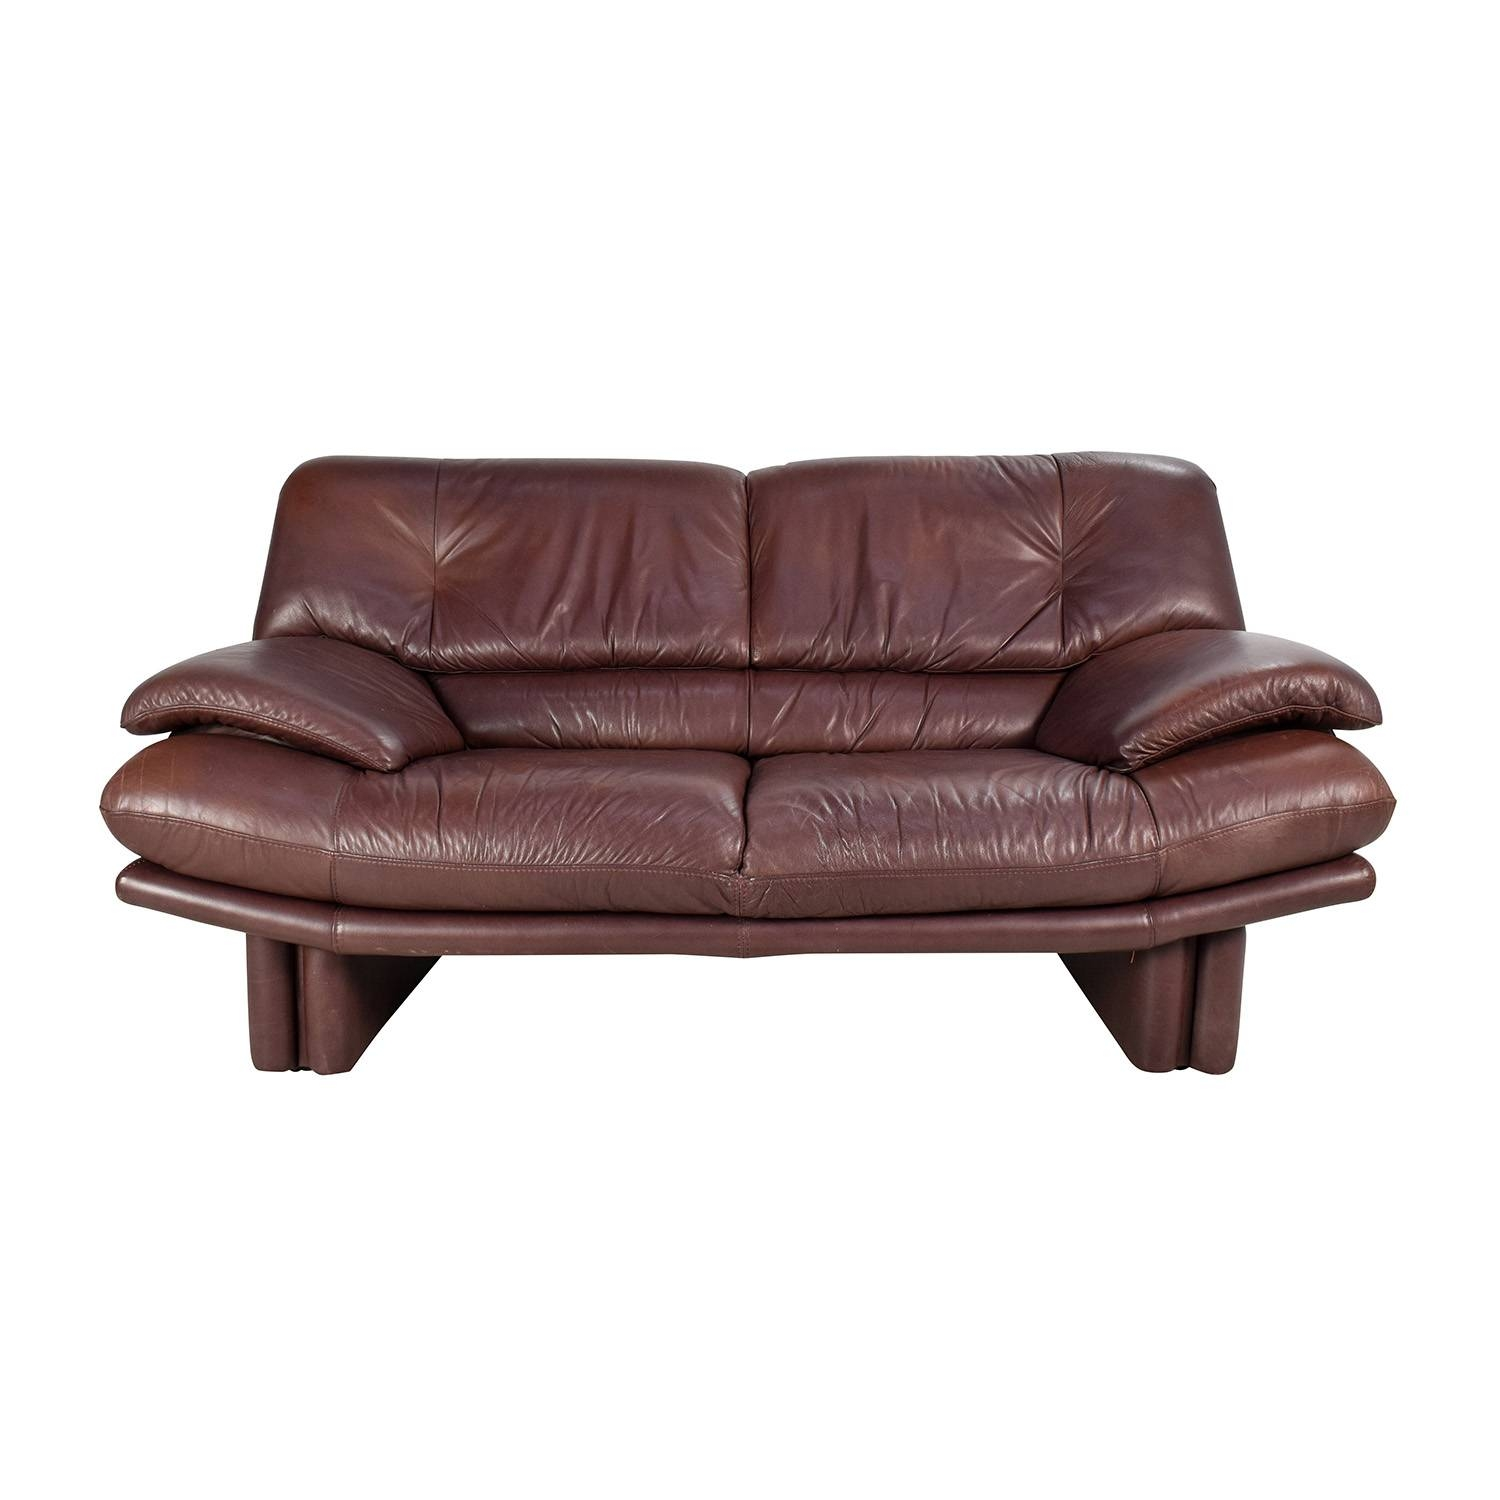 67% Off - Maurice Villency Maurice Villency Brown Leather Sofa / Sofas in Canterbury Leather Sofas (Image 3 of 30)